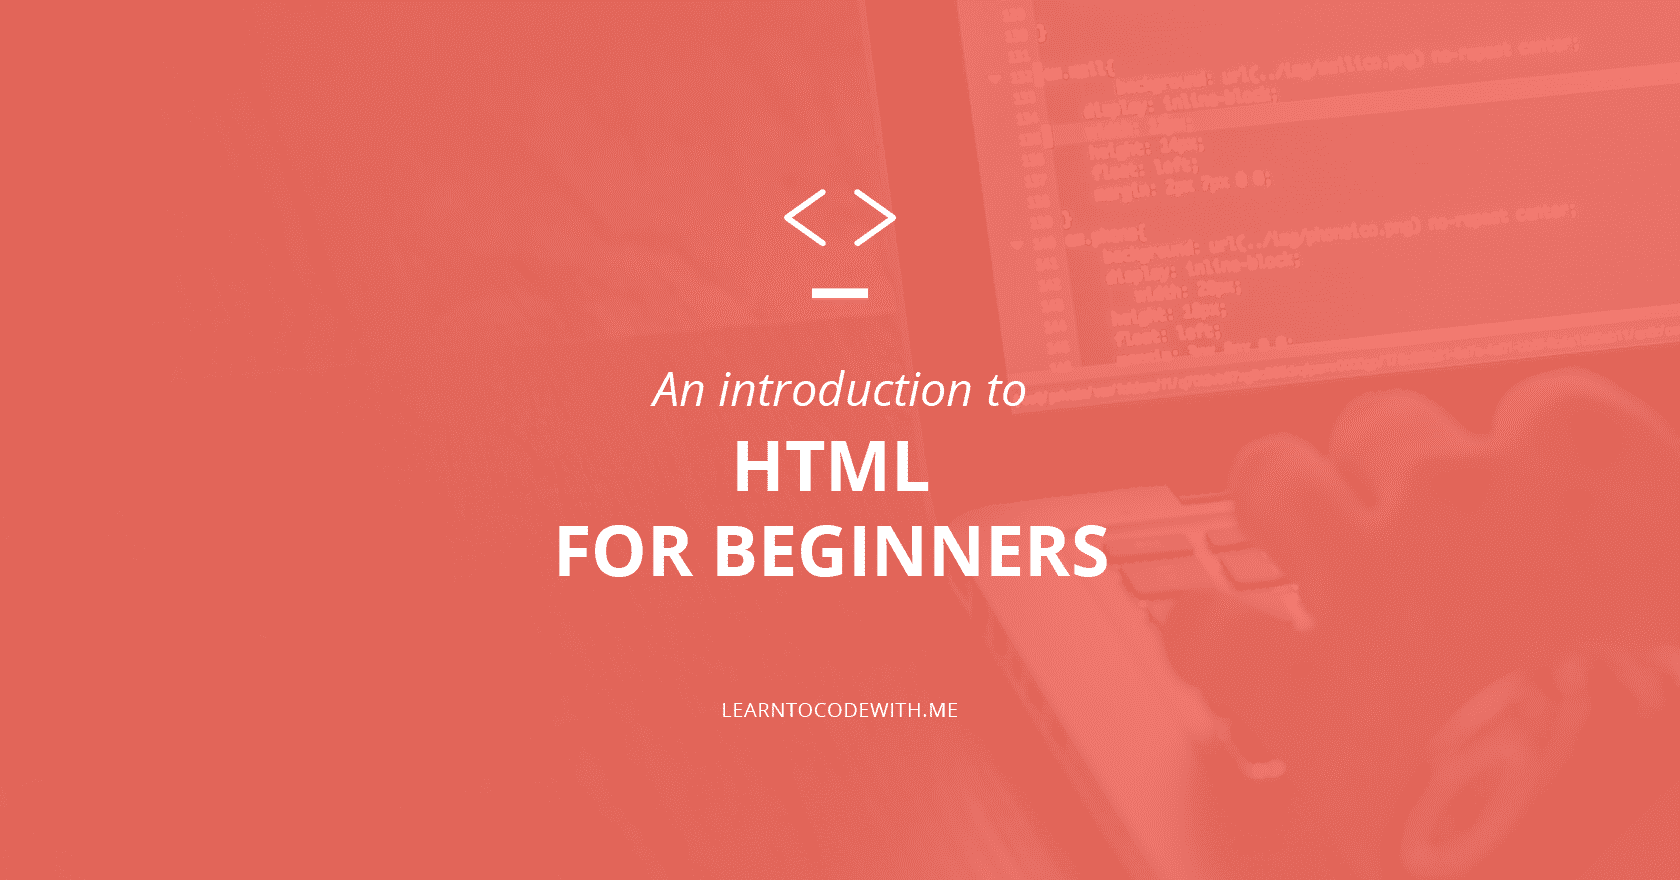 An introduction to HTML for beginners